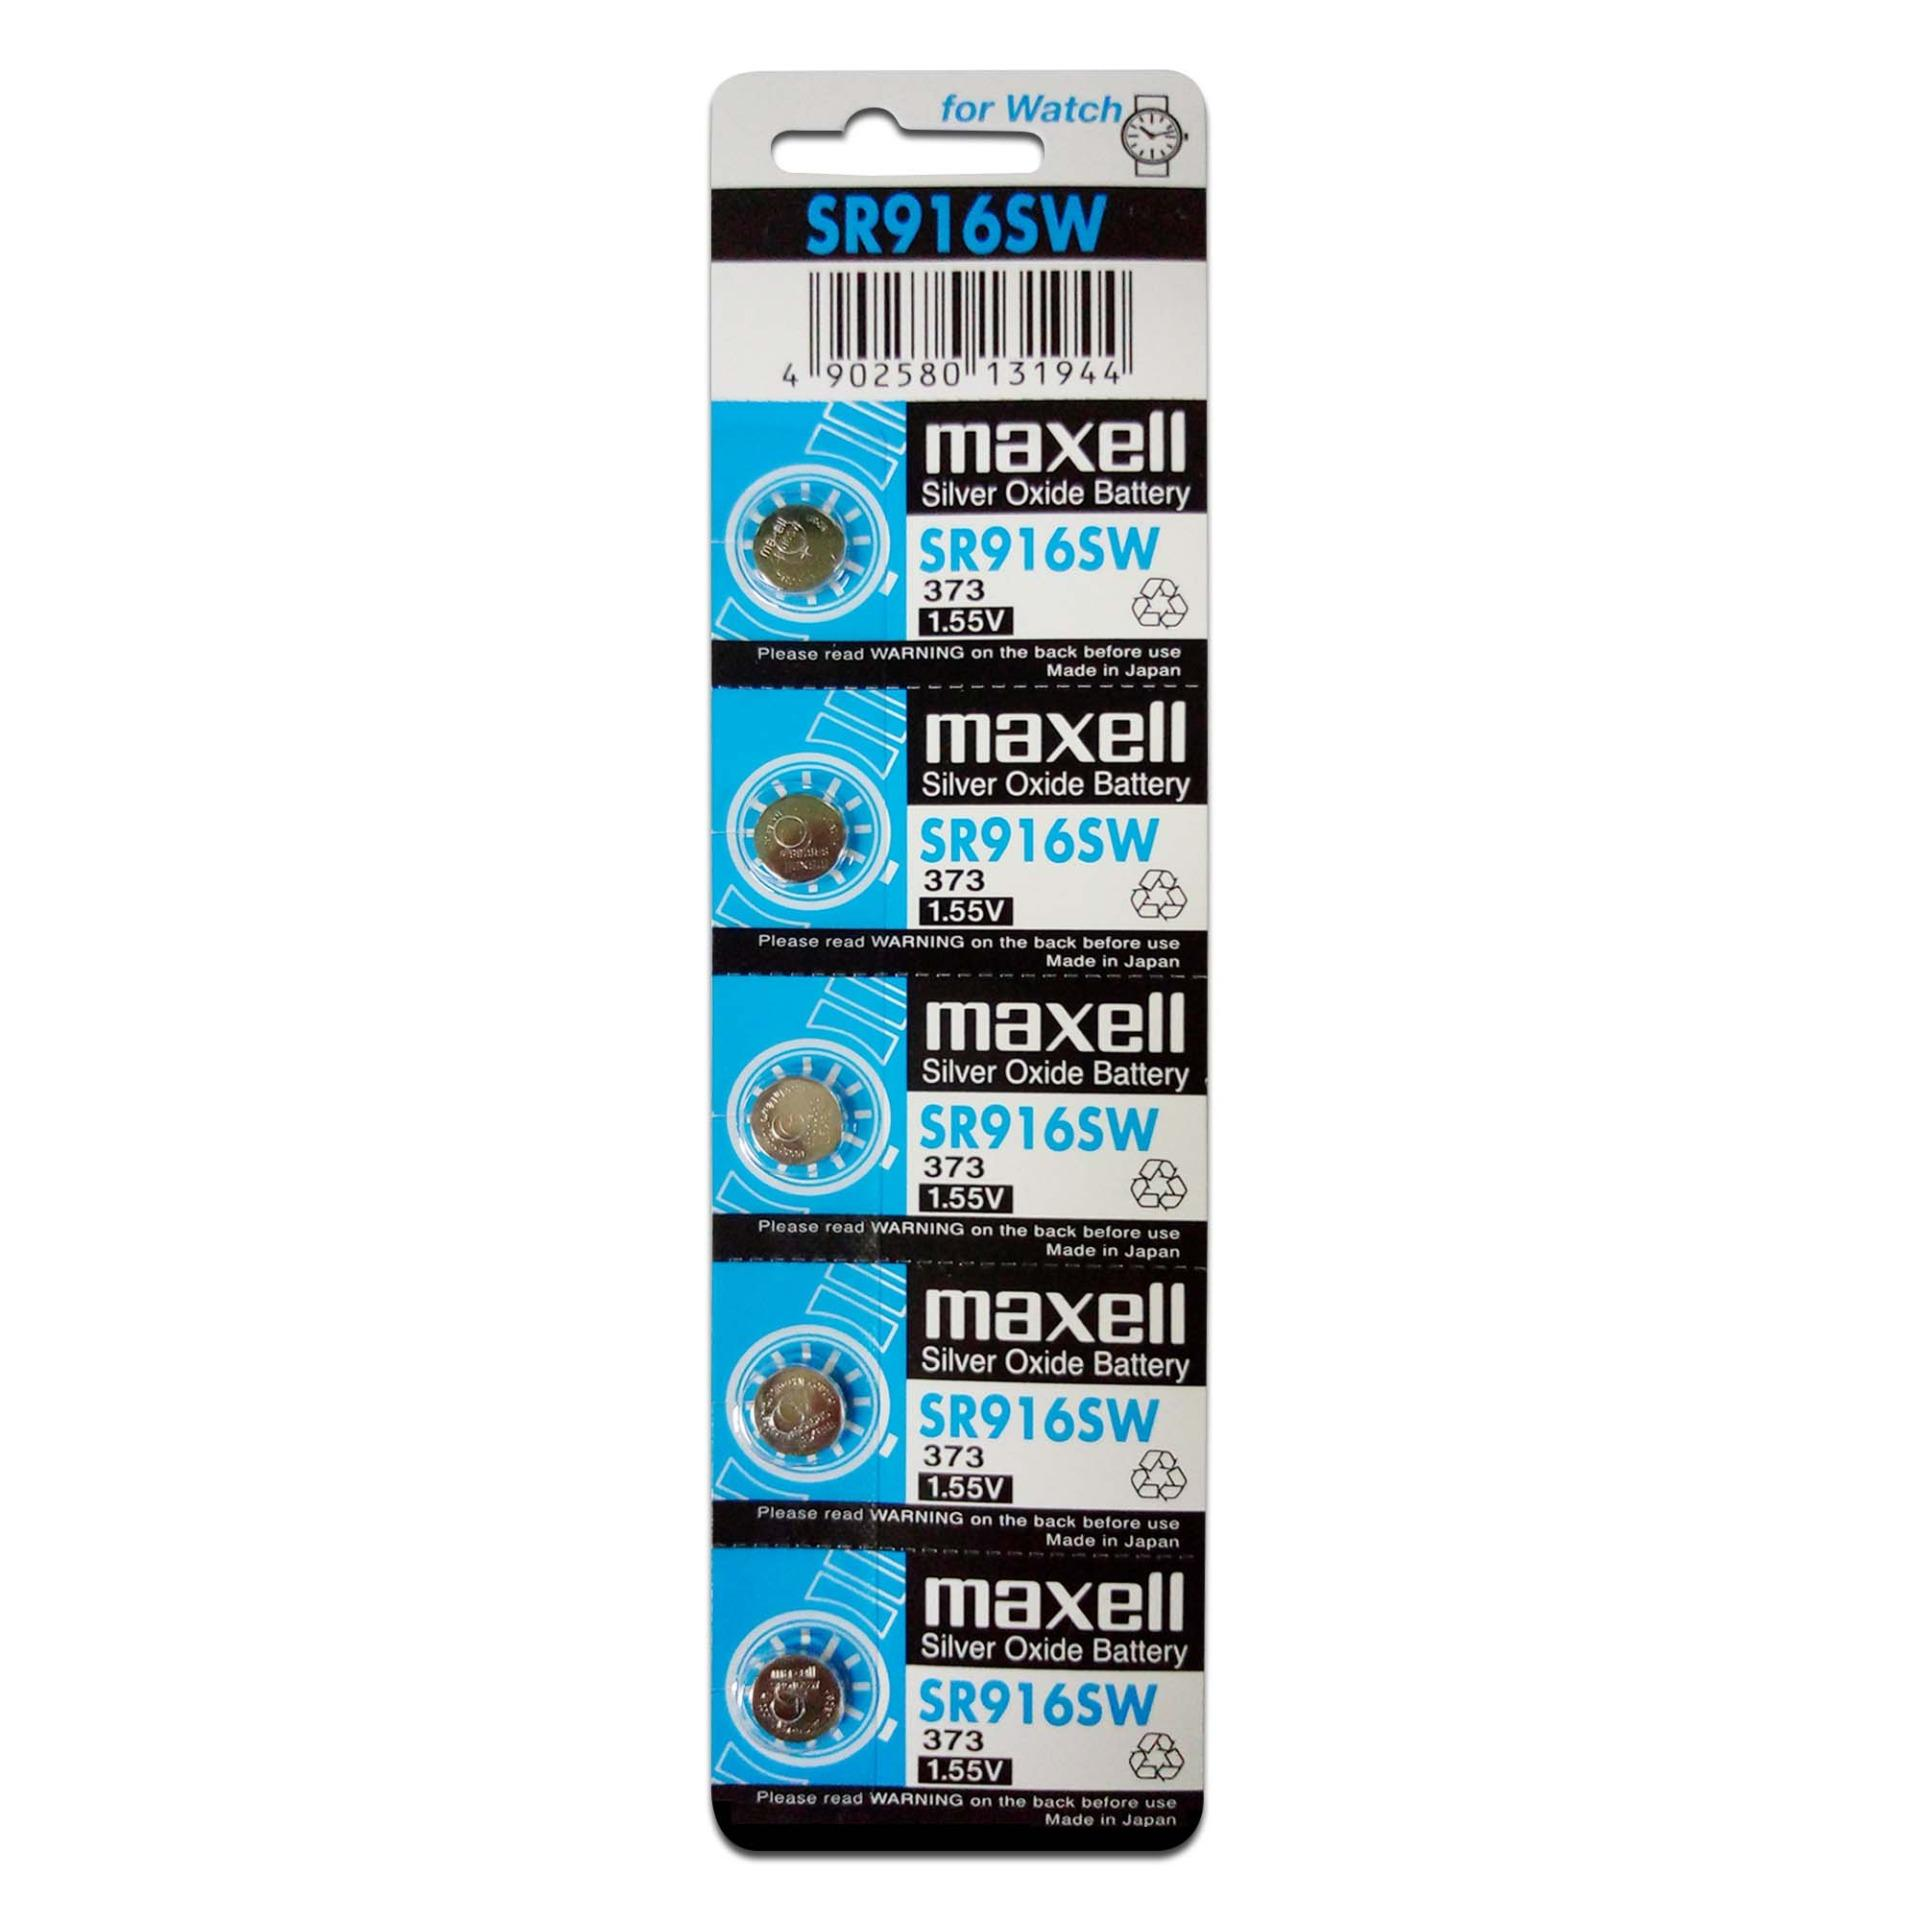 Maxell Silver Oxide Battery SR916SW (Pack 0f 5)